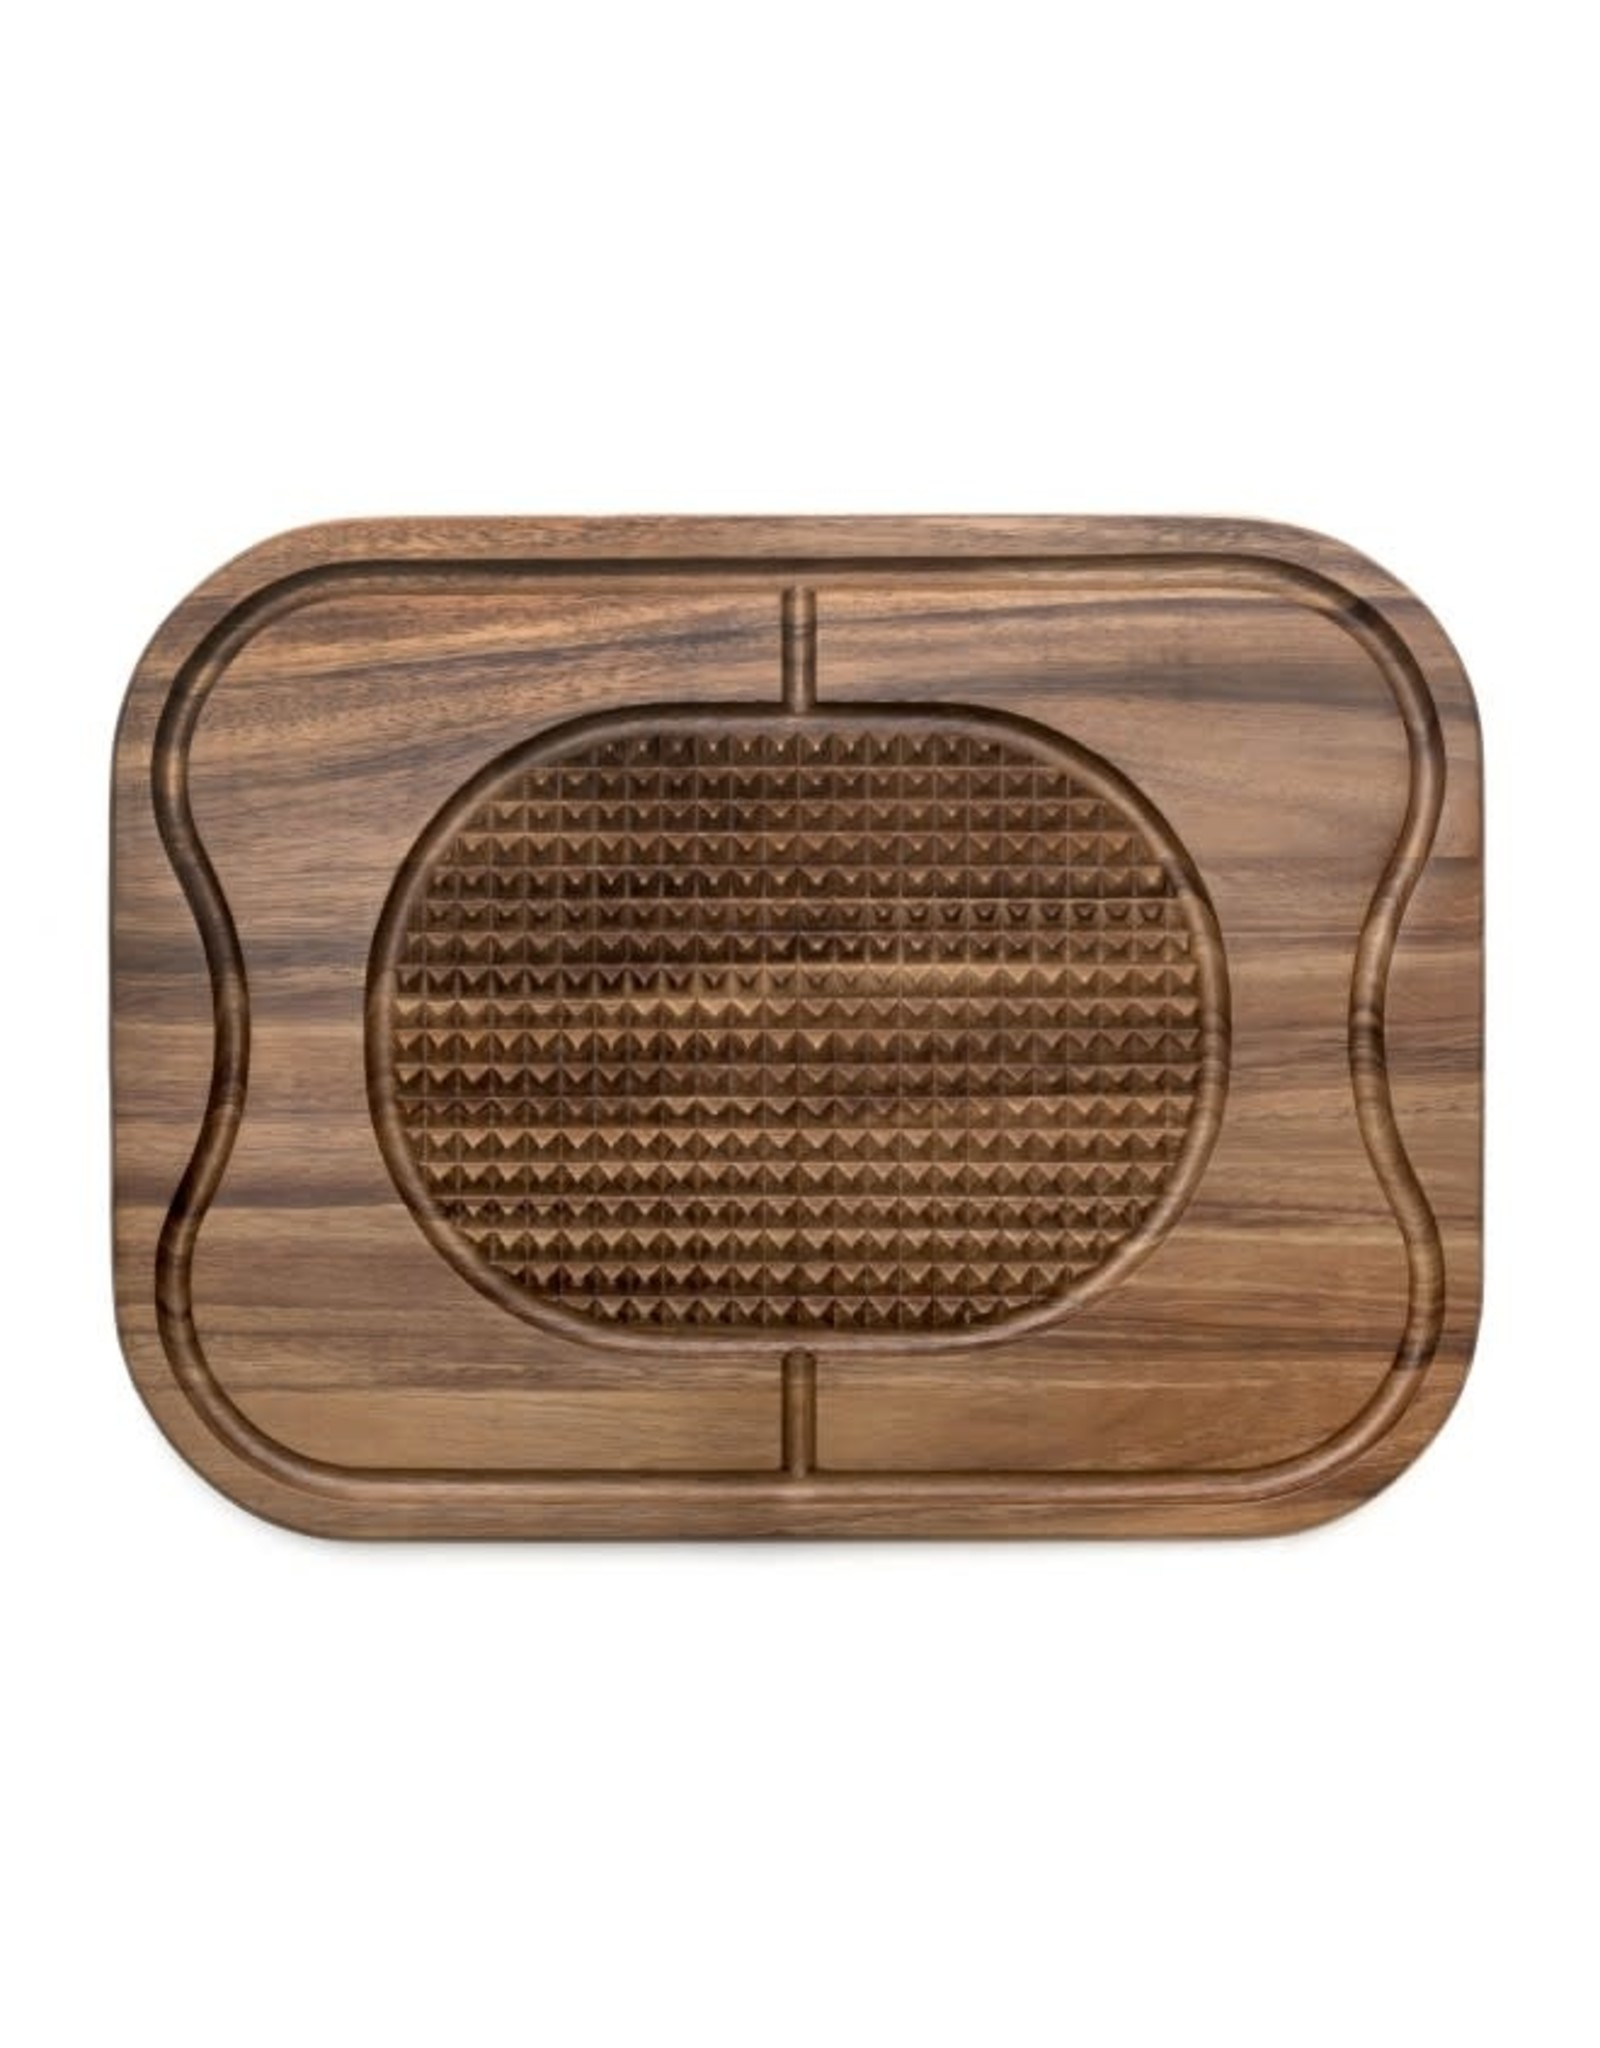 Lipper LIPPER-Acacia Carving Board with Grid Grip